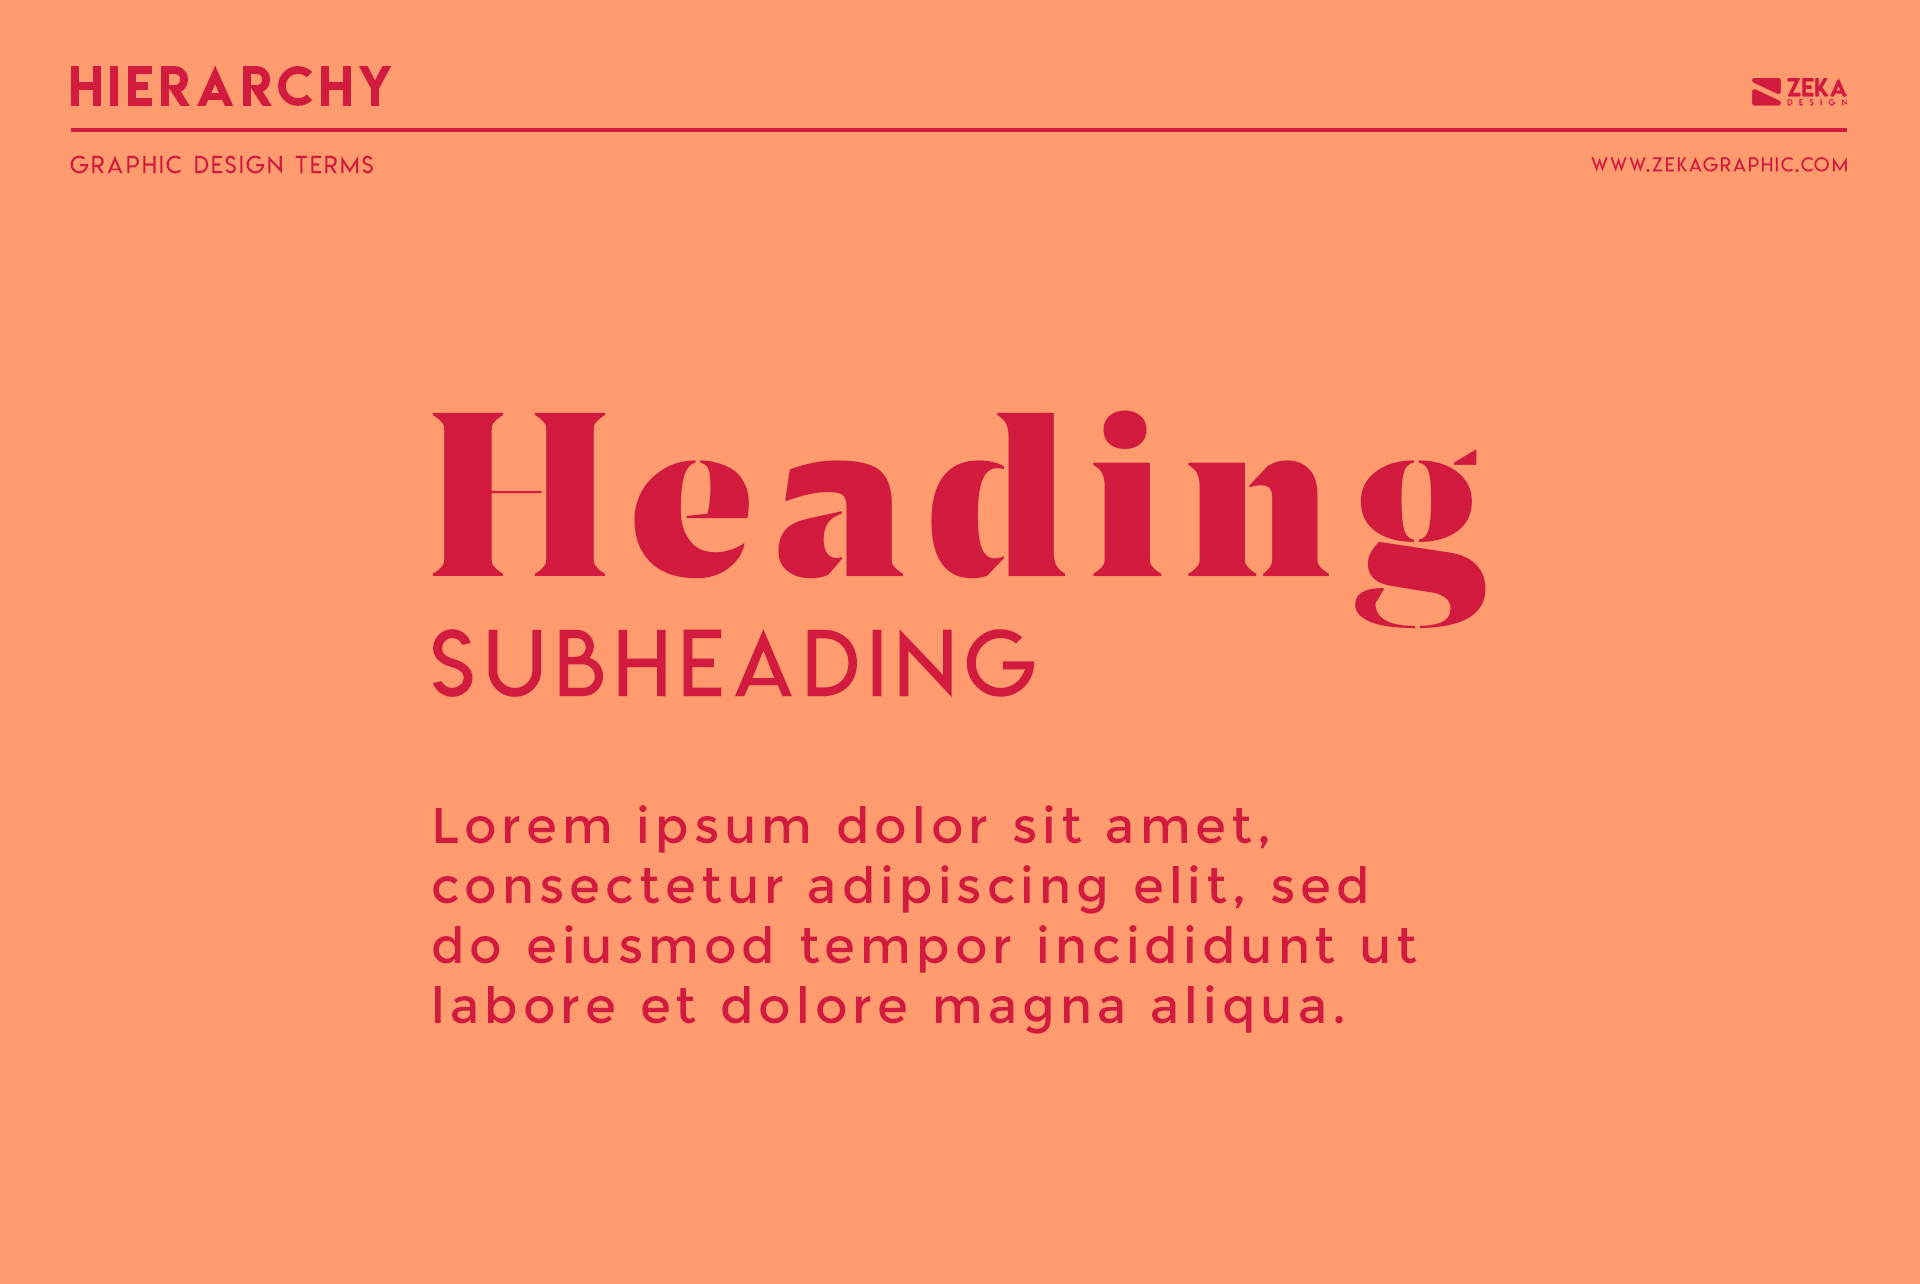 Hierarchy Typography Graphic Design Terms